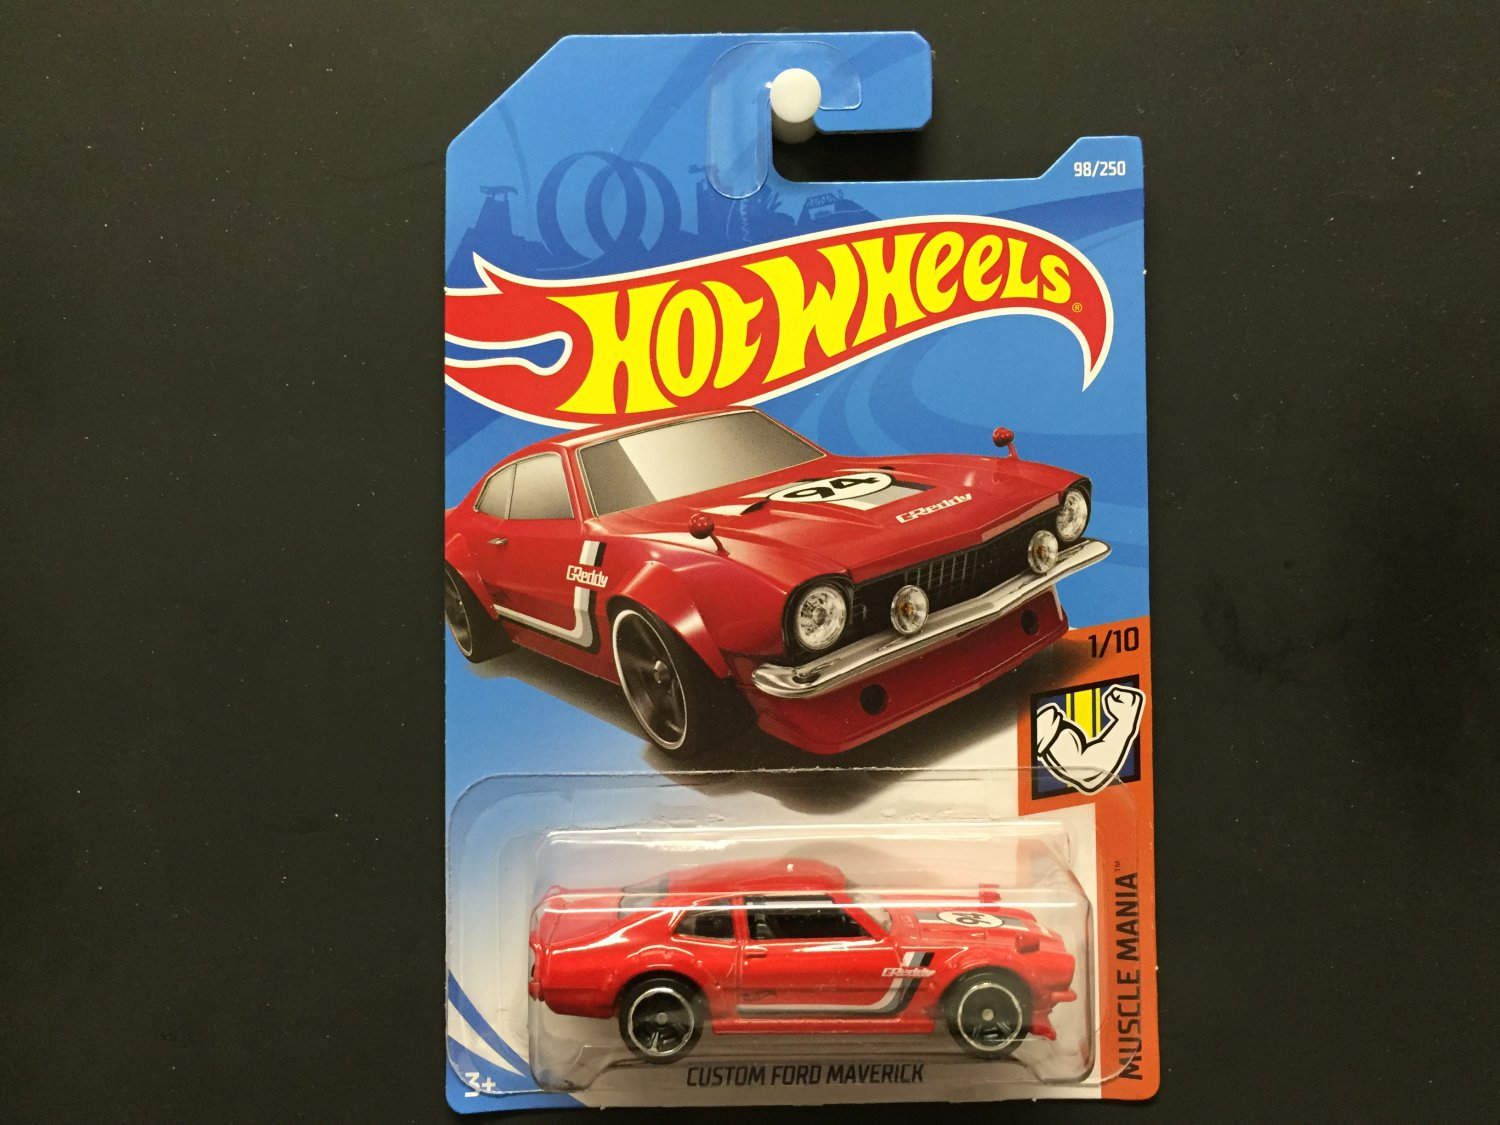 2019 Hot Wheels Custom Ford Maverick (Red) - Muscle Mania 1/10